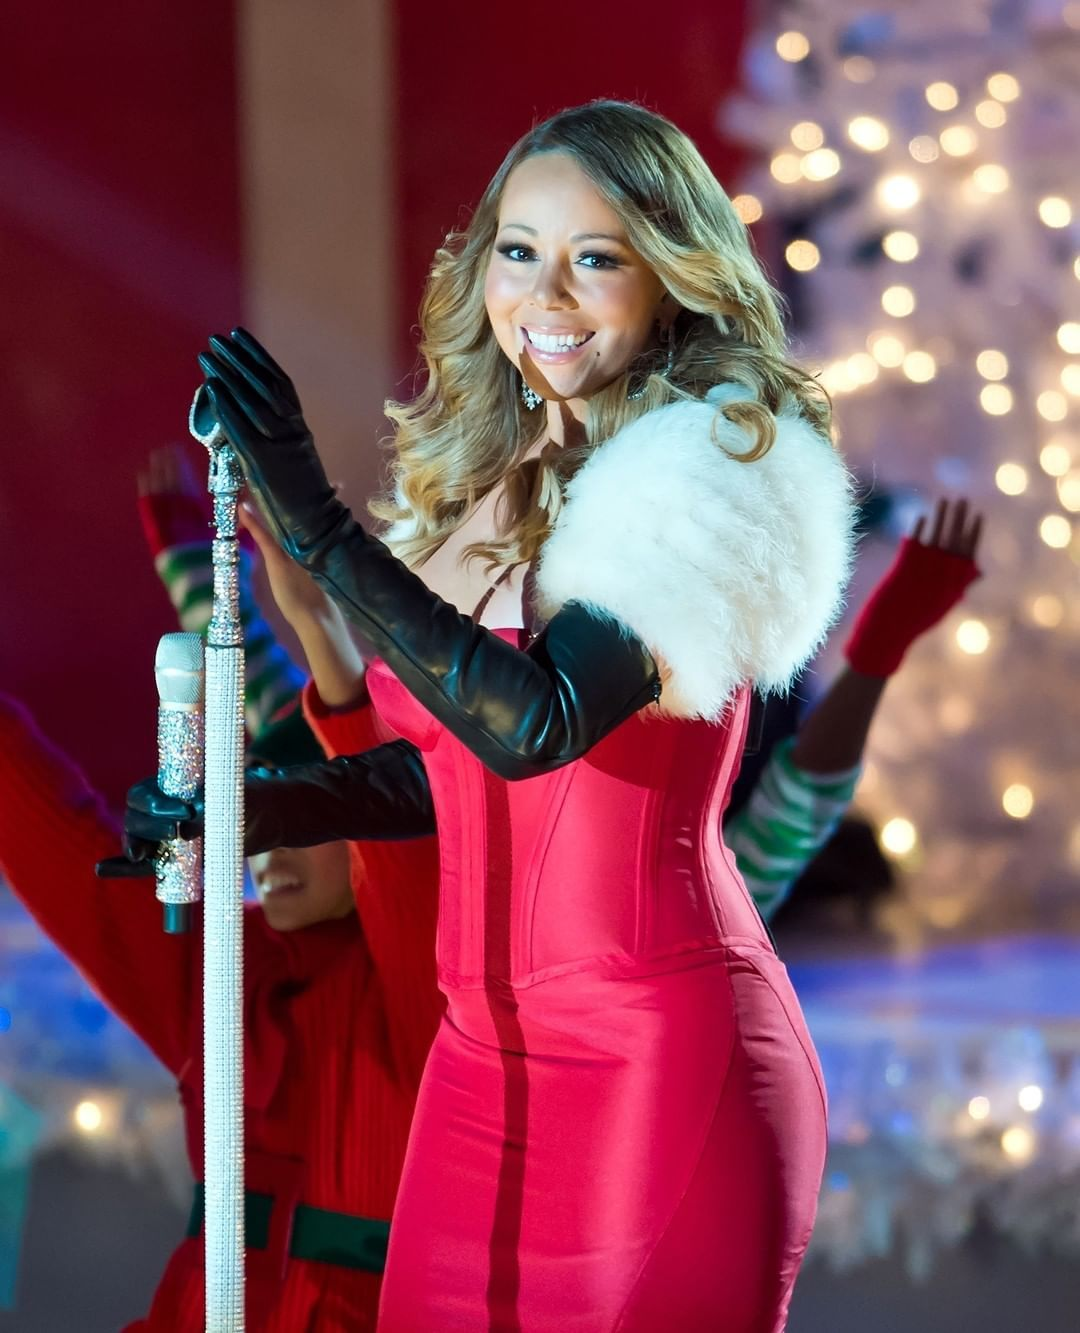 33 4 Mil Curtidas 265 Comentarios Billboard Billboard No Instagram It S Official Mariahcarey S All I Want For Christmas Is You Re Enters The Hot100